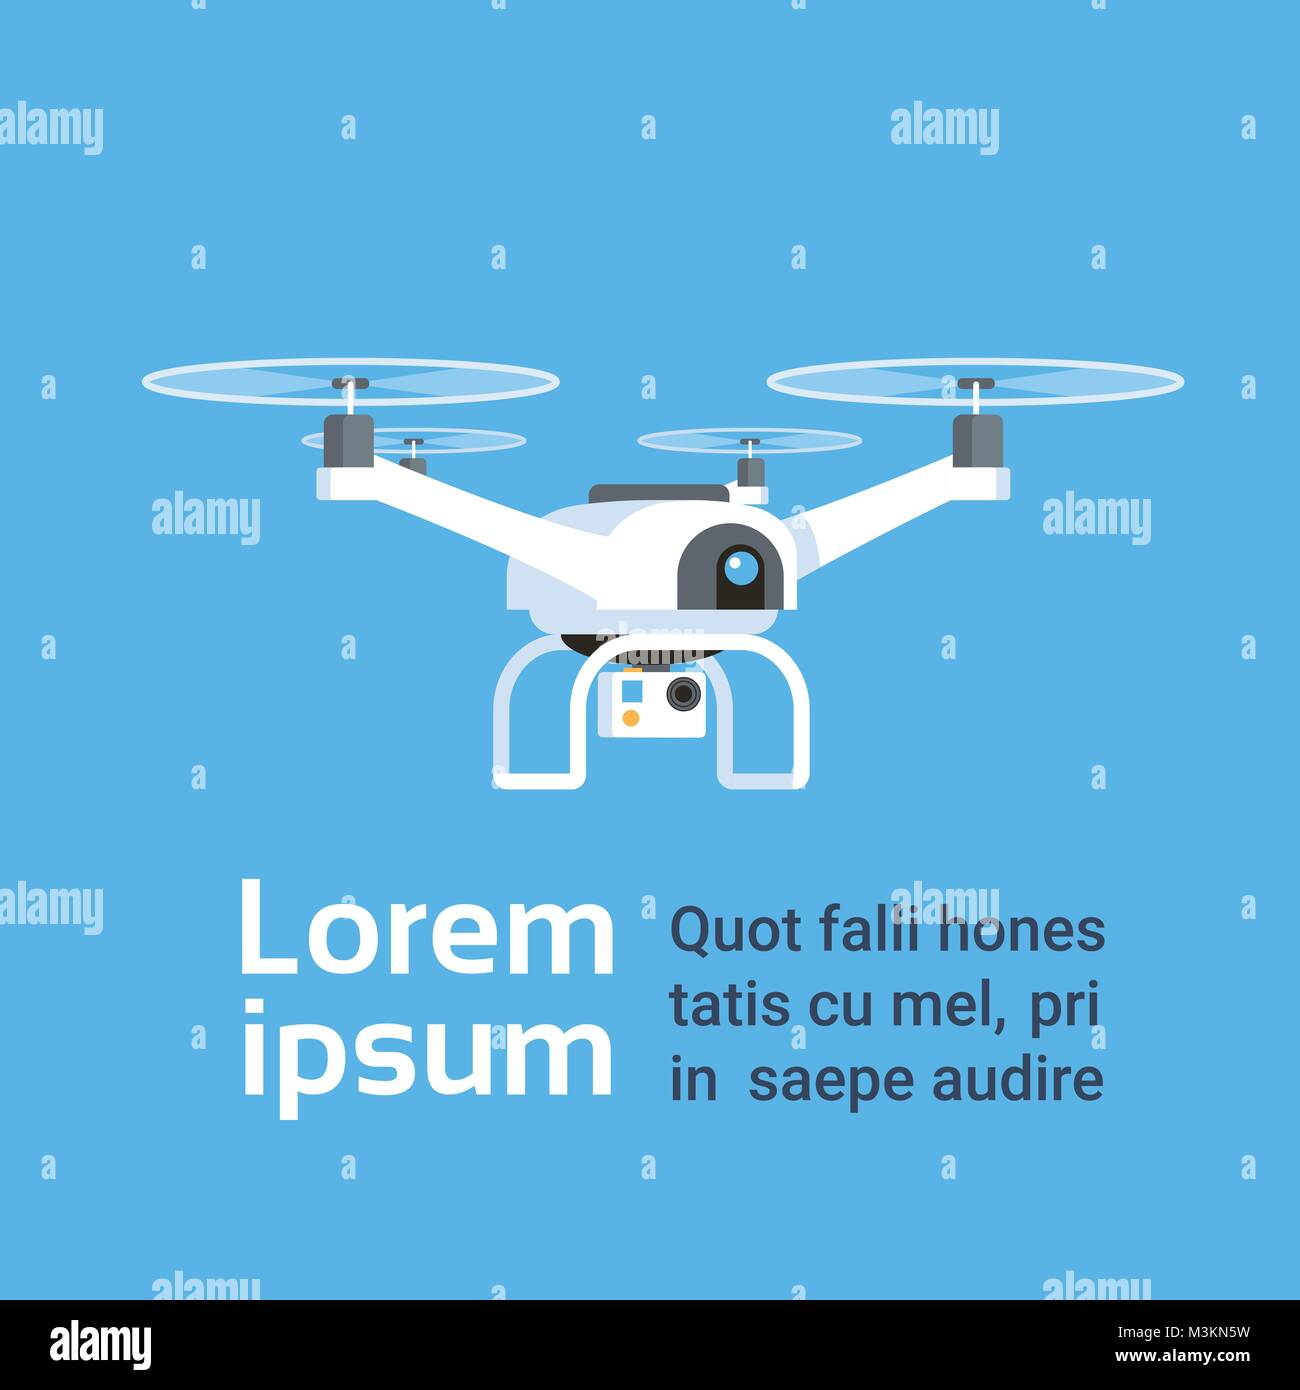 Remote Aerial Drone With Camera Taking Photography Or Video Recording Over Background With Copy Space - Stock Vector